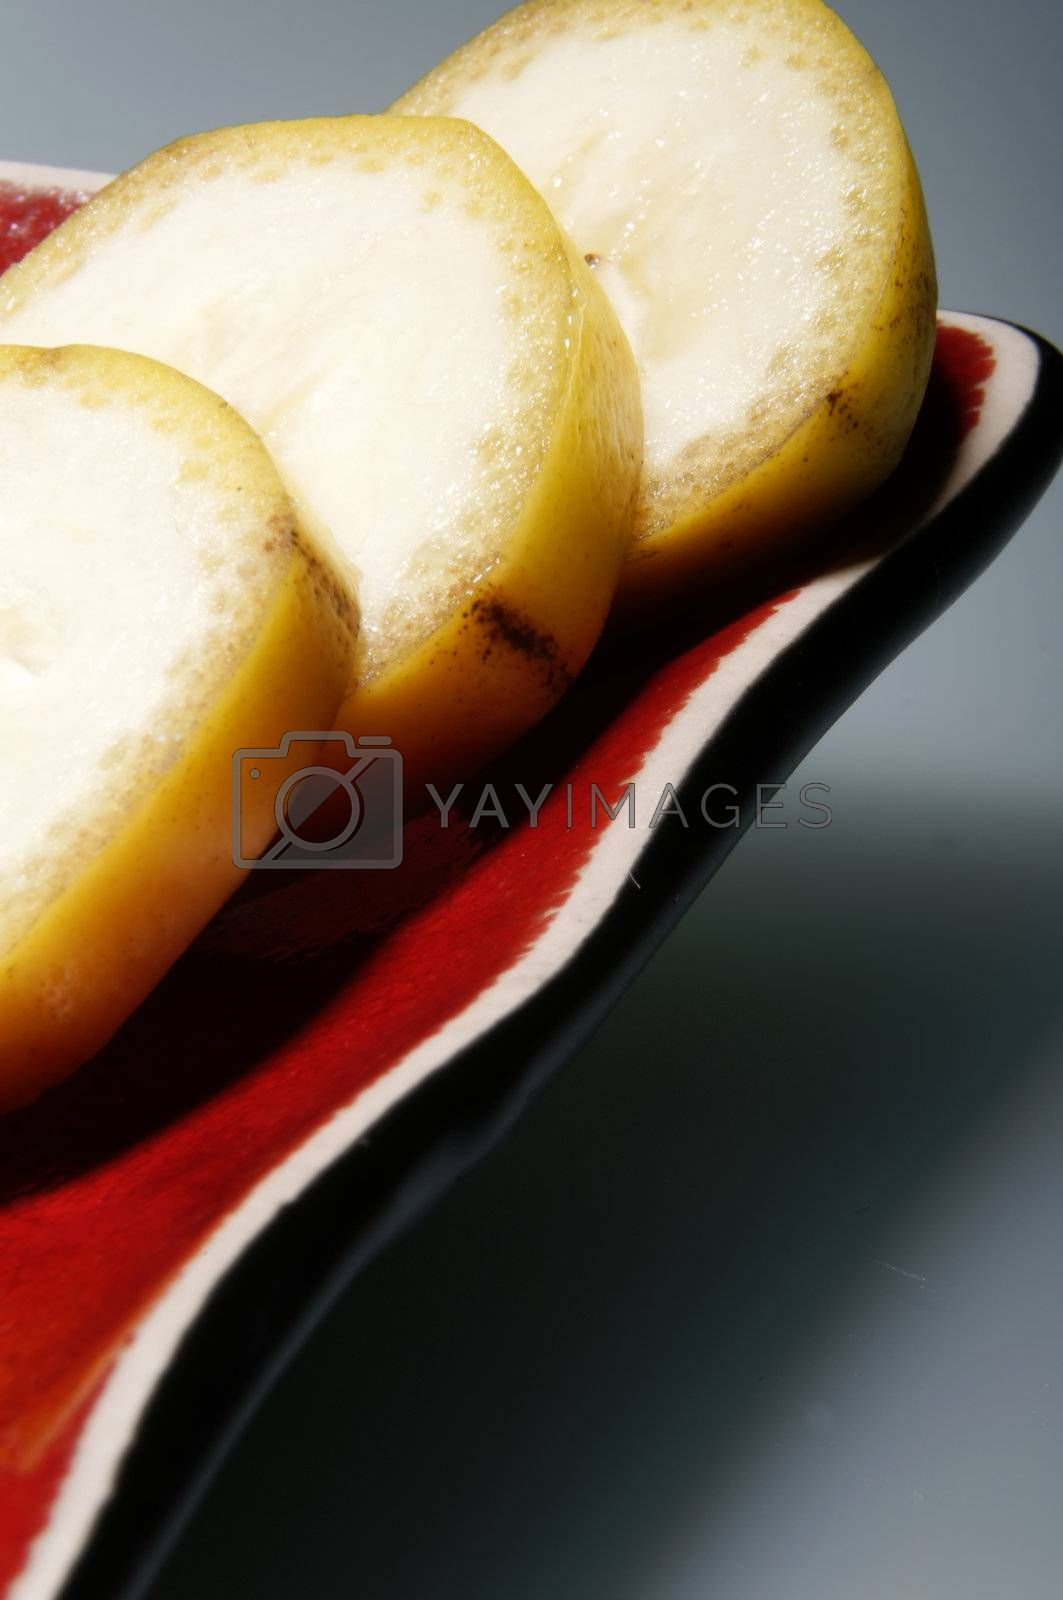 Slices of bananas on red plate